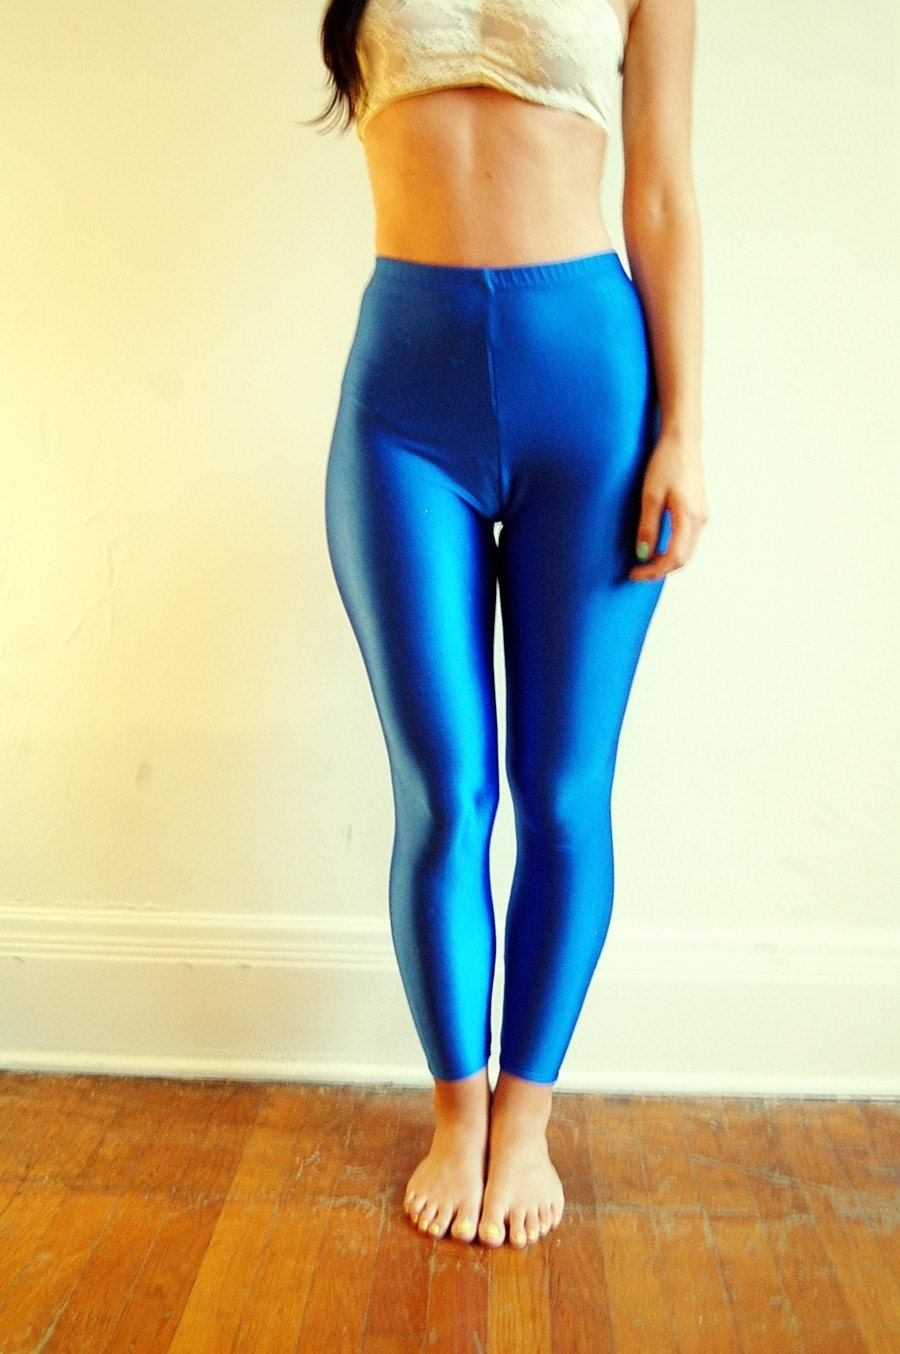 Watch the video Blue Spandex Disco Pants on Xtube, the world's best porn tube with the hottest selection of porn videos and gay XXX movies.